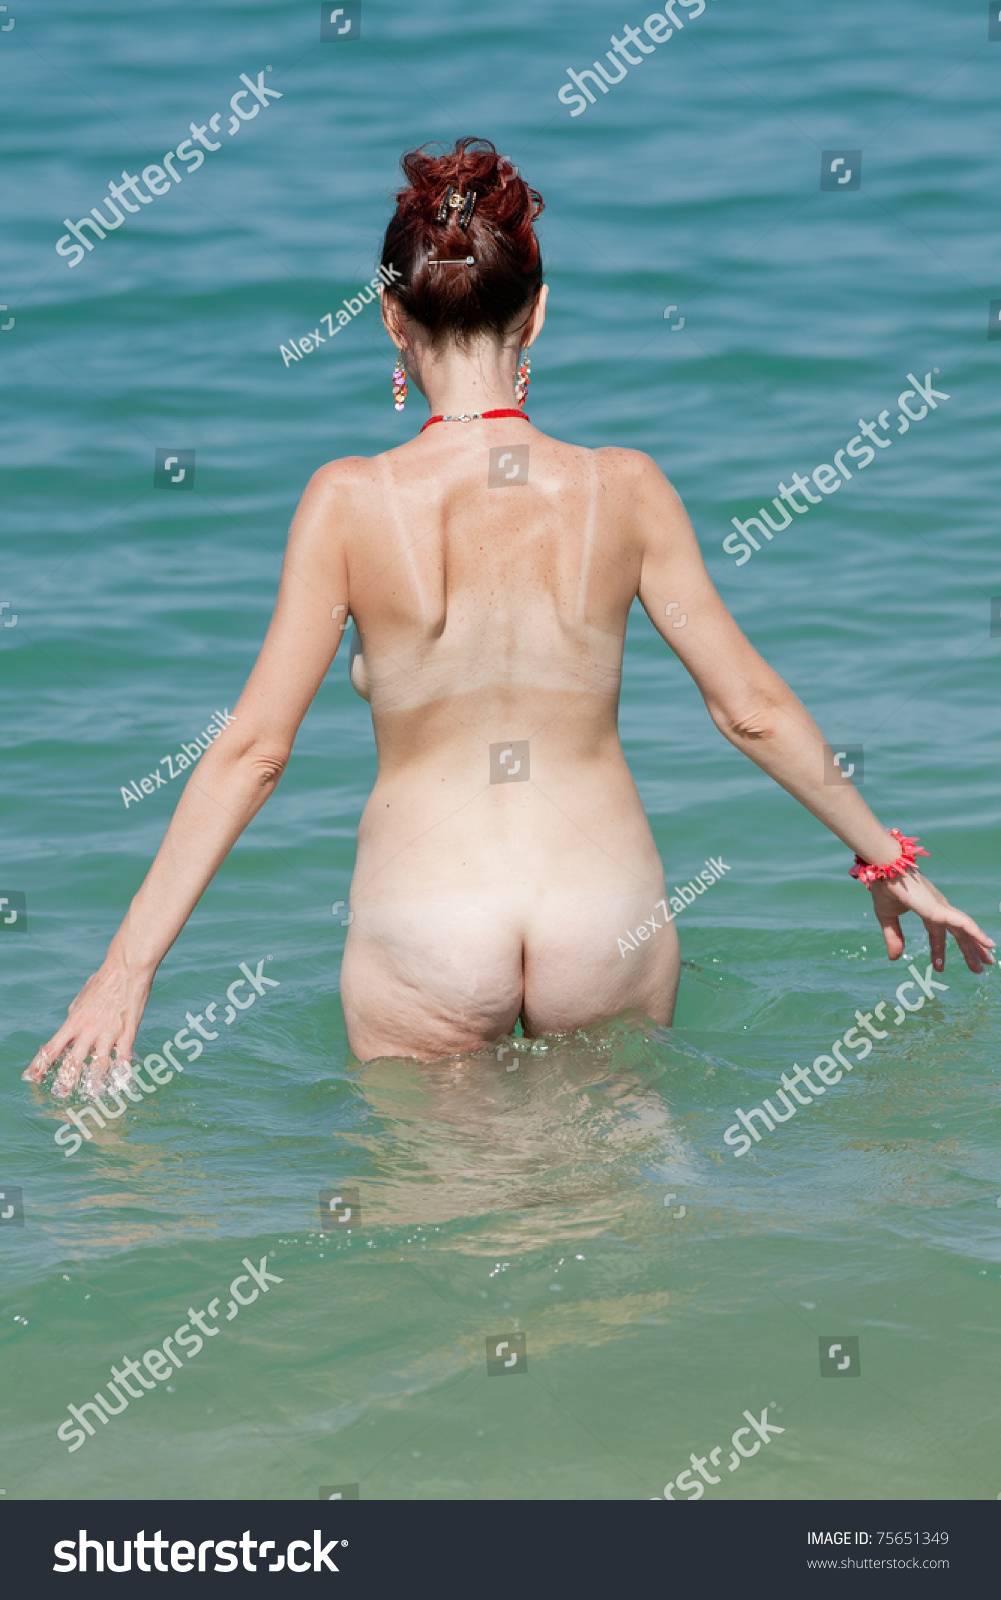 Women Nude Skinny Dipping 34